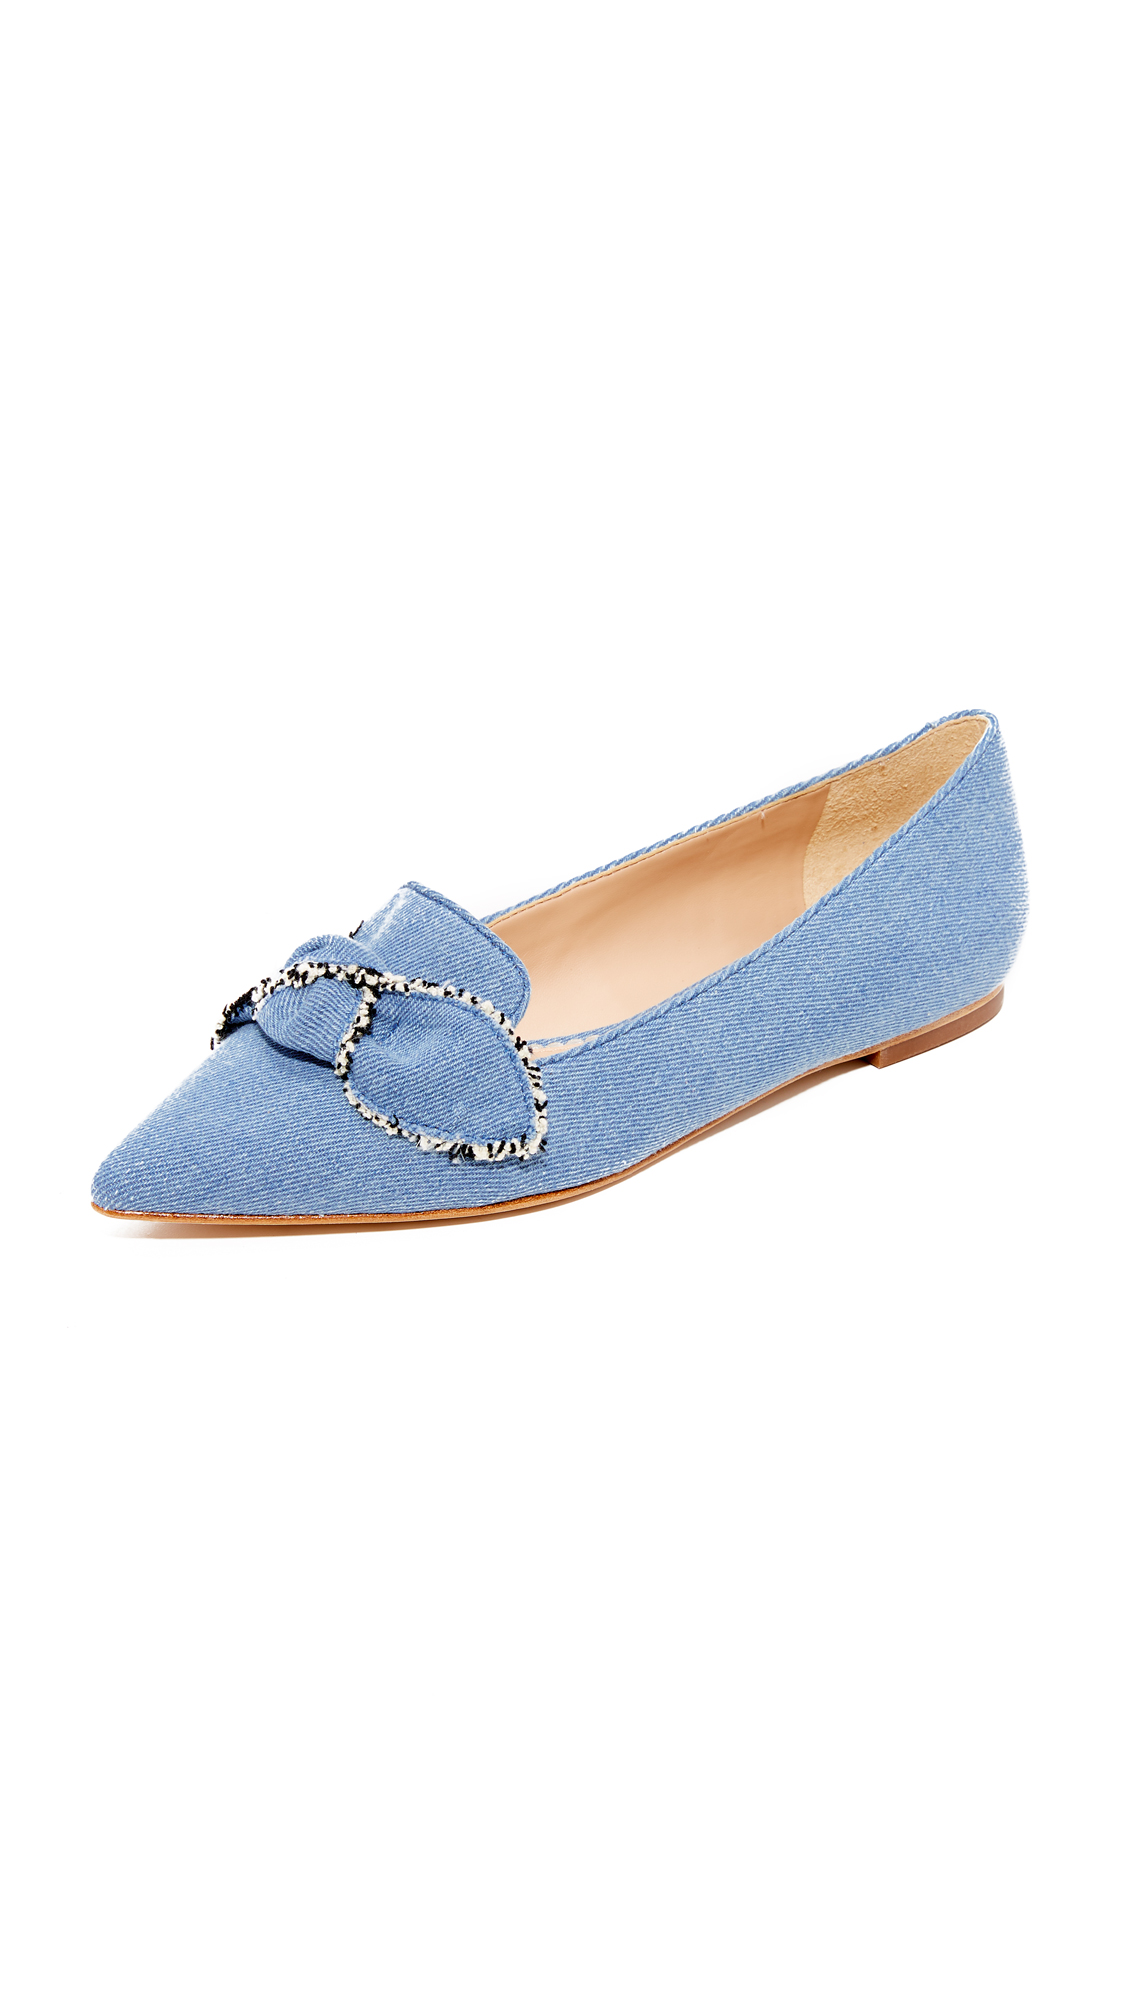 Sam Edelman Rochester Flats - Light Blue